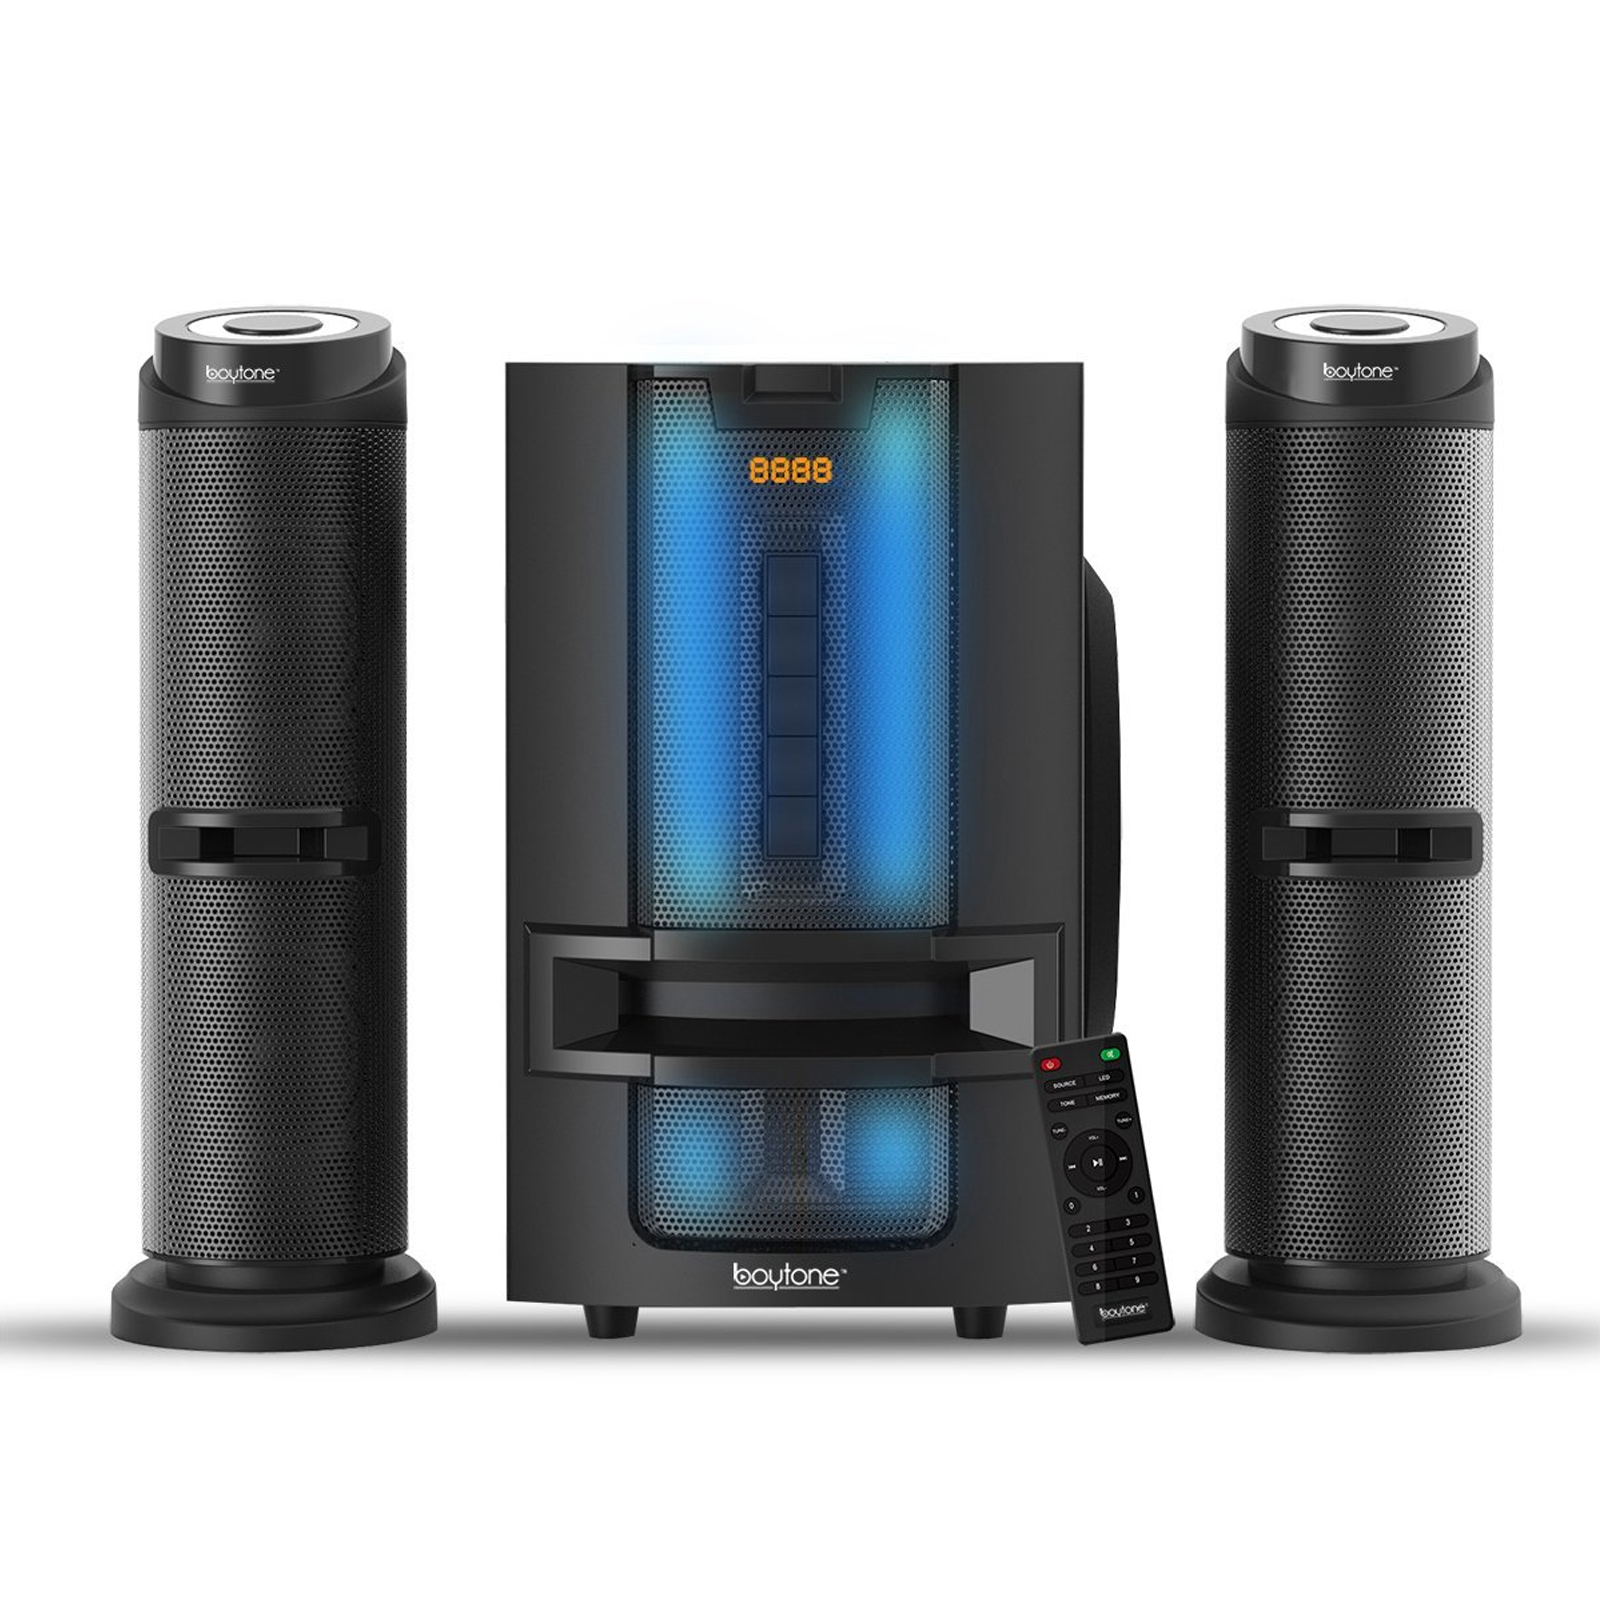 Boytone 2.1 BT Powerful Home Theater Speaker System with FM Radio by Boytone